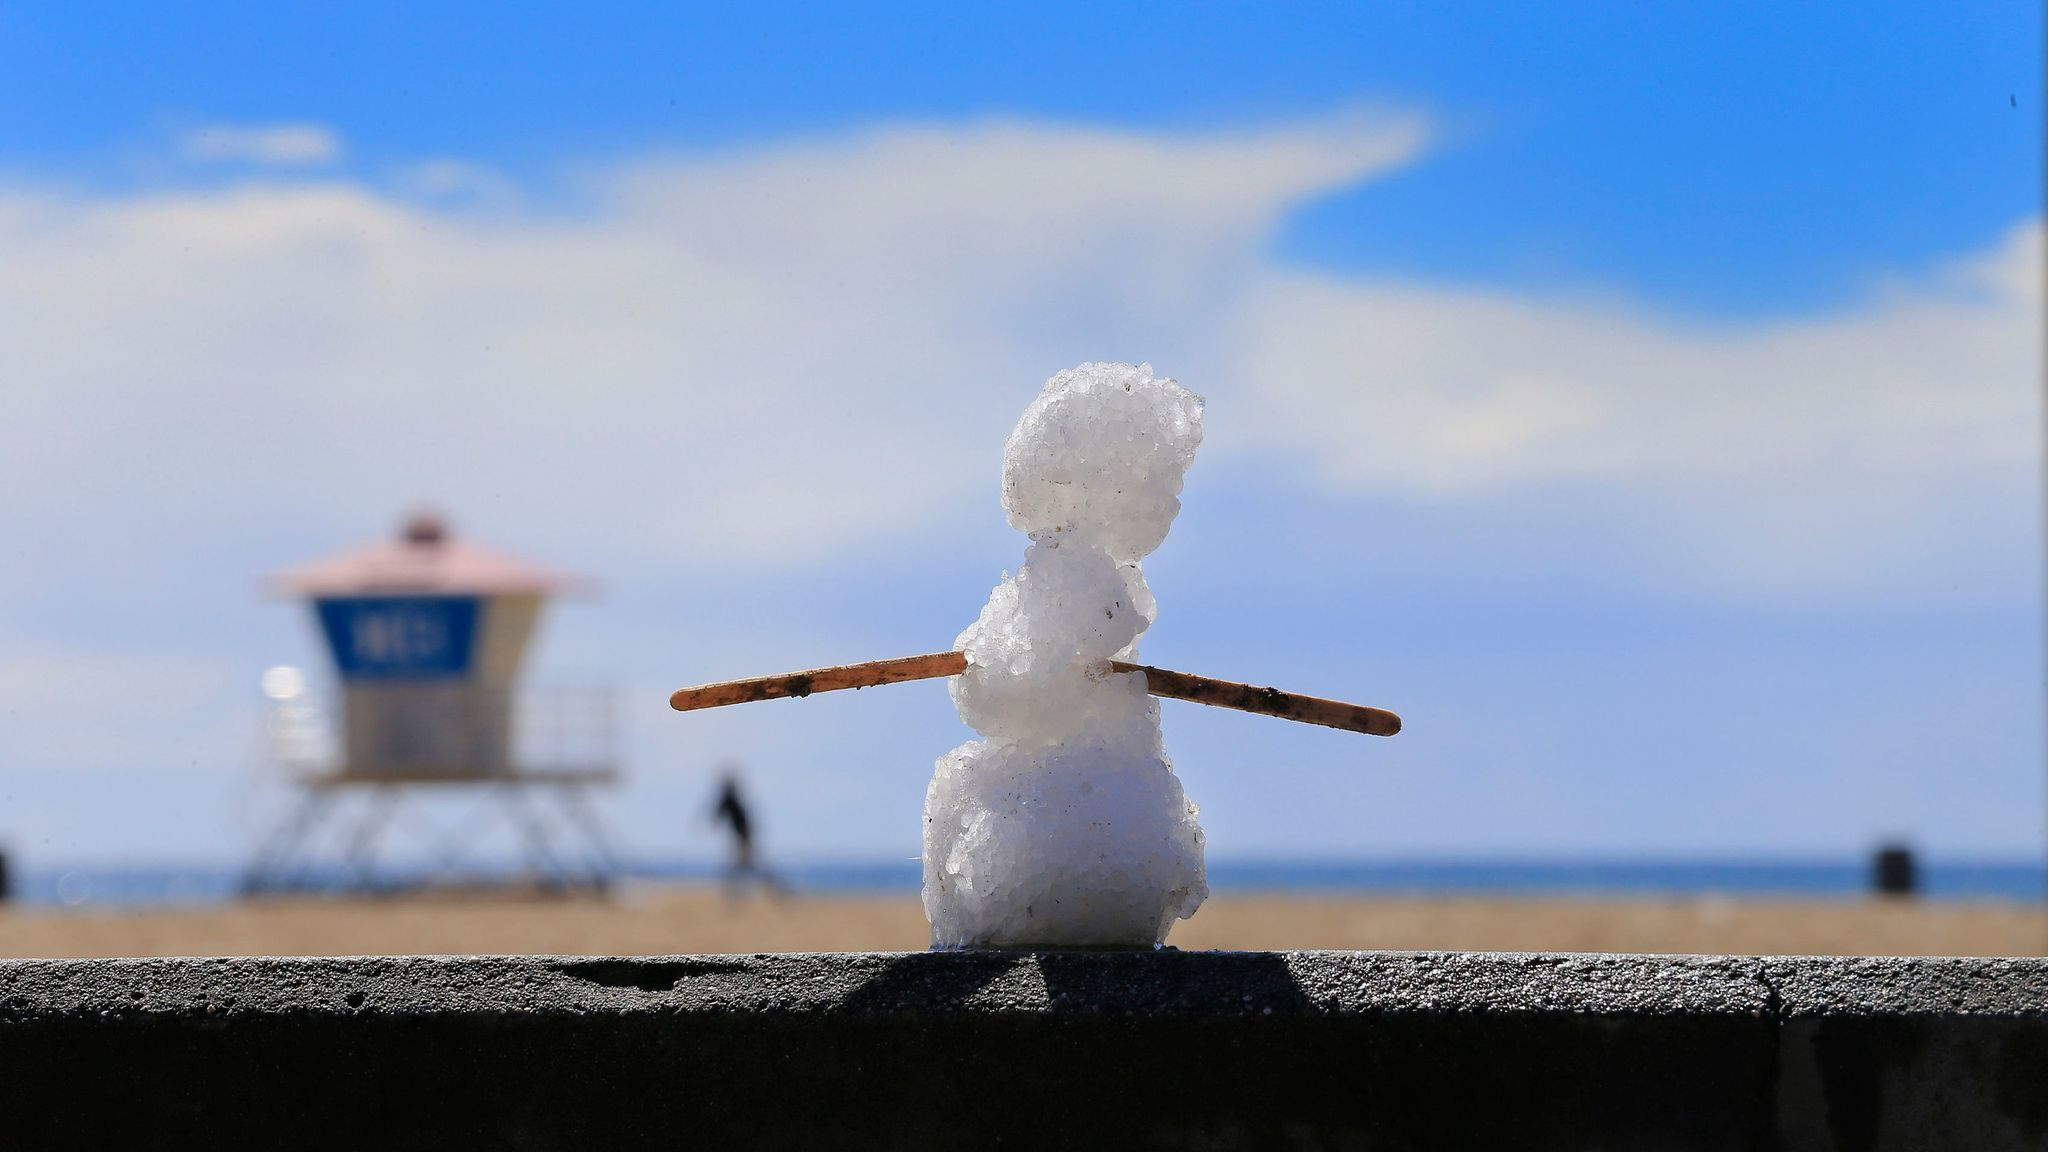 HUNTINGTON BEACH, CA MARCH 2, 2015: A snowman made of hail stands amid a rare sight of a blanket o